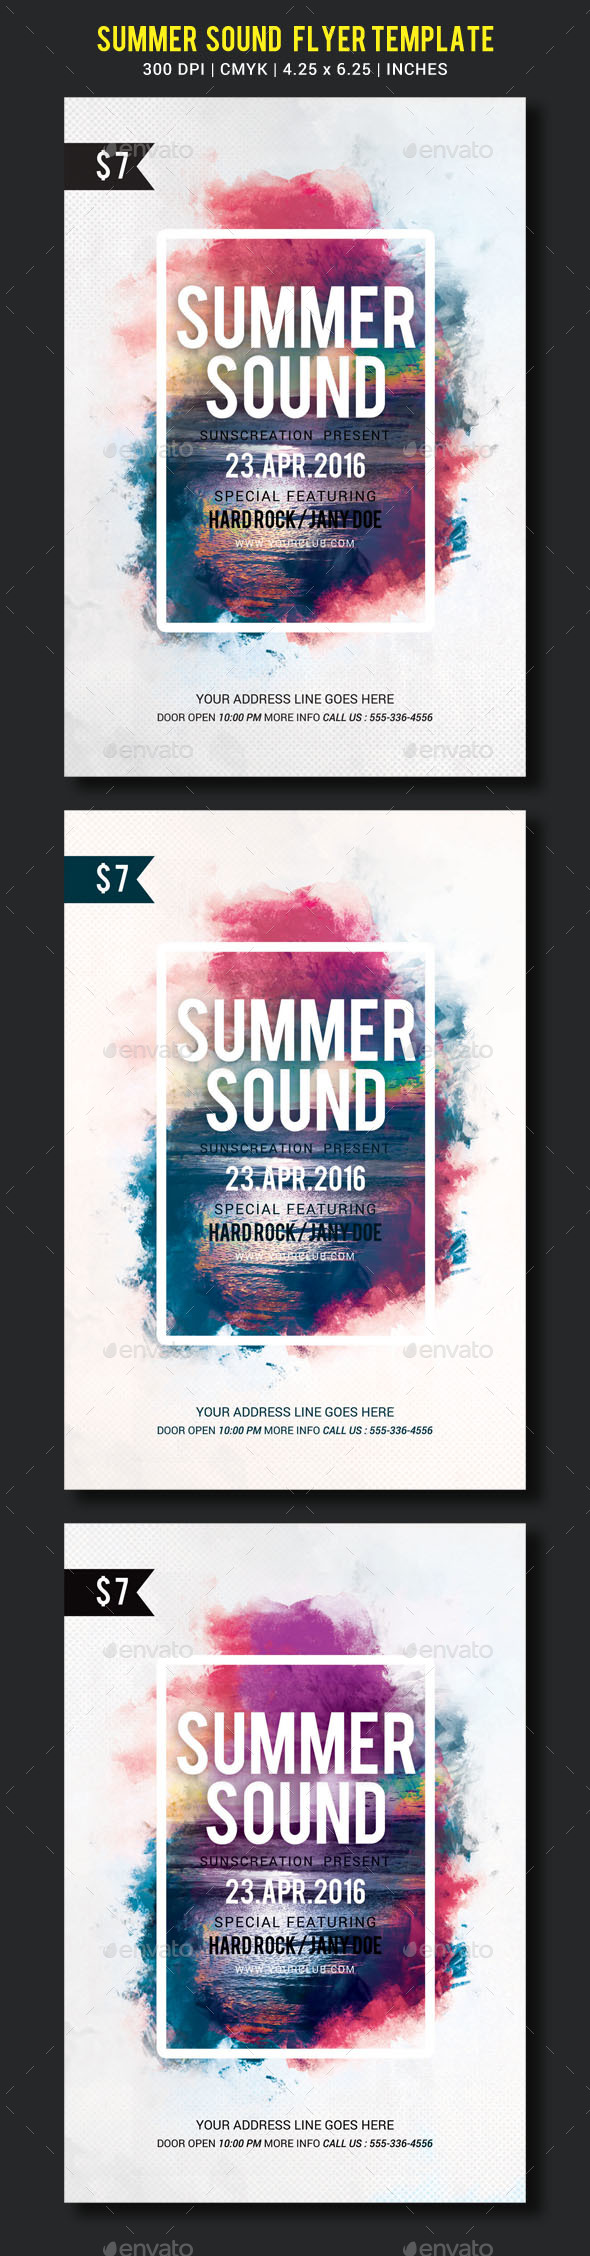 Summer Sound Party Flyer Template - Clubs & Parties Events